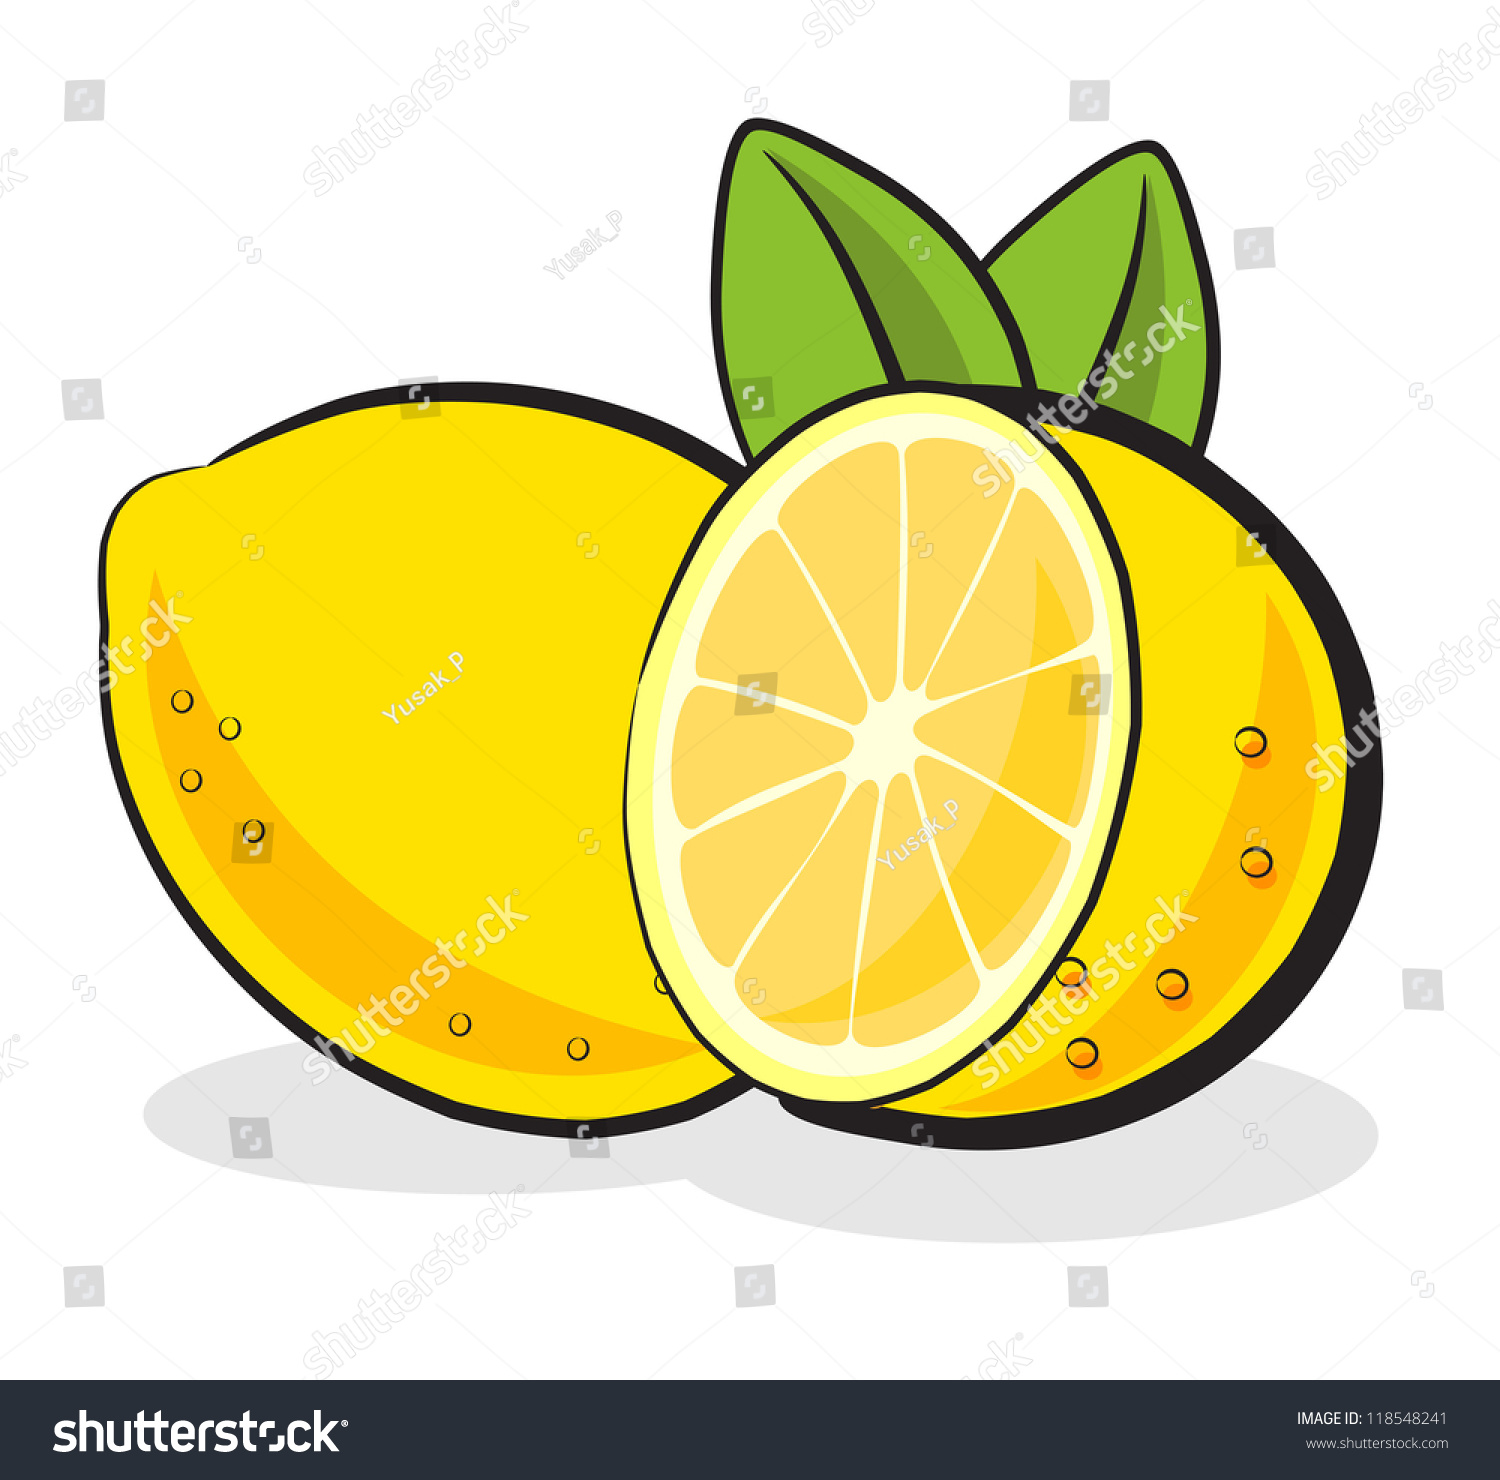 Lemon clipart small #3